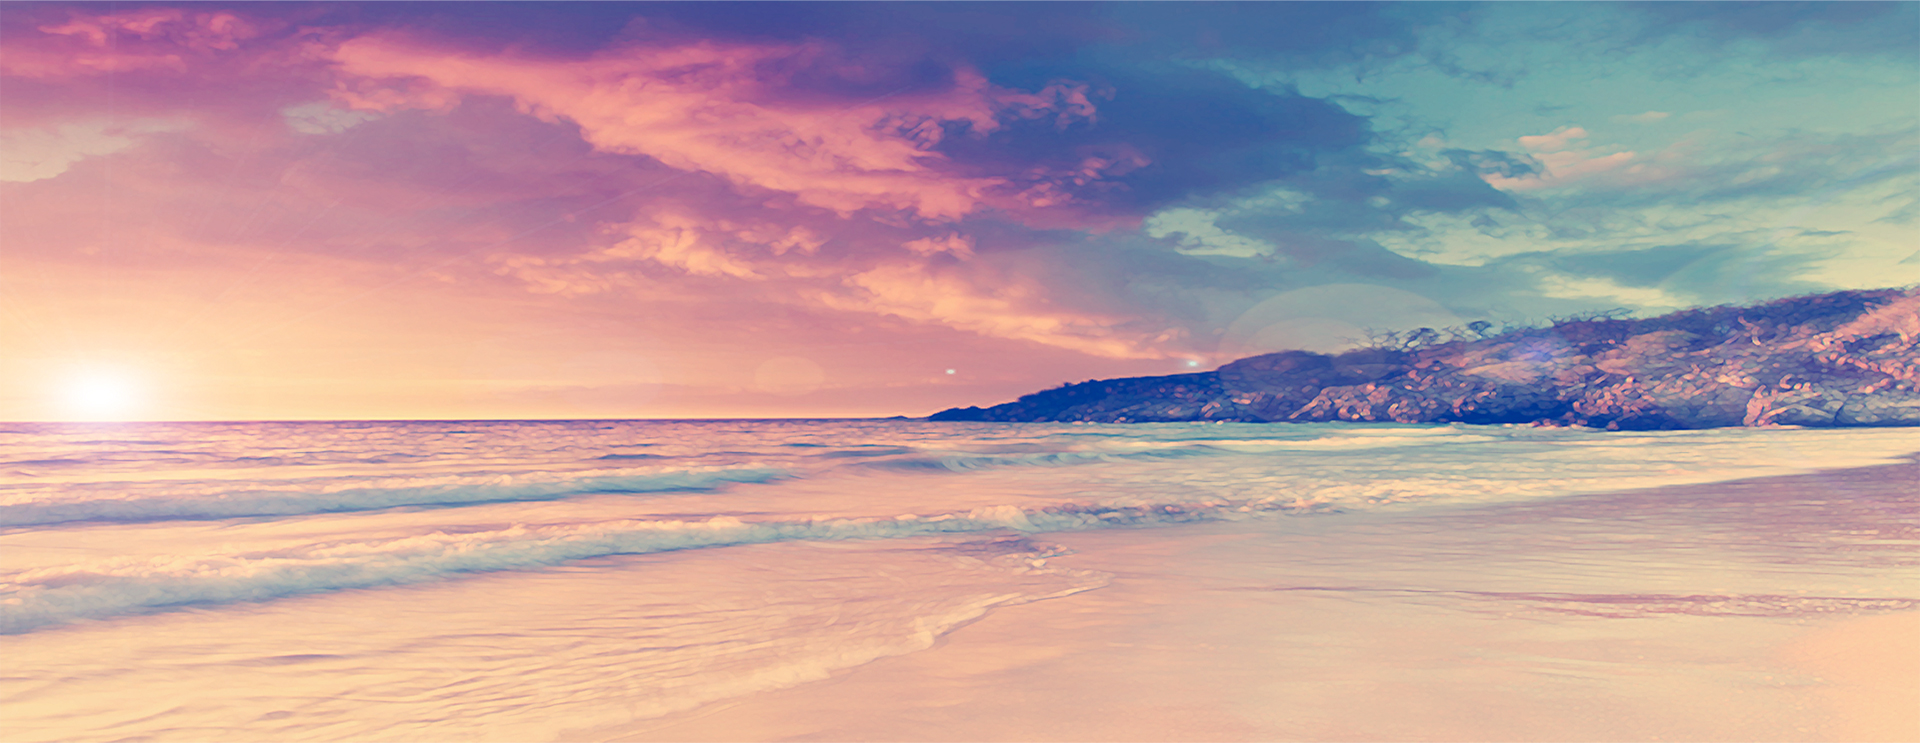 Romantic Sunset Beach Background, Poster, Banner, Romantic